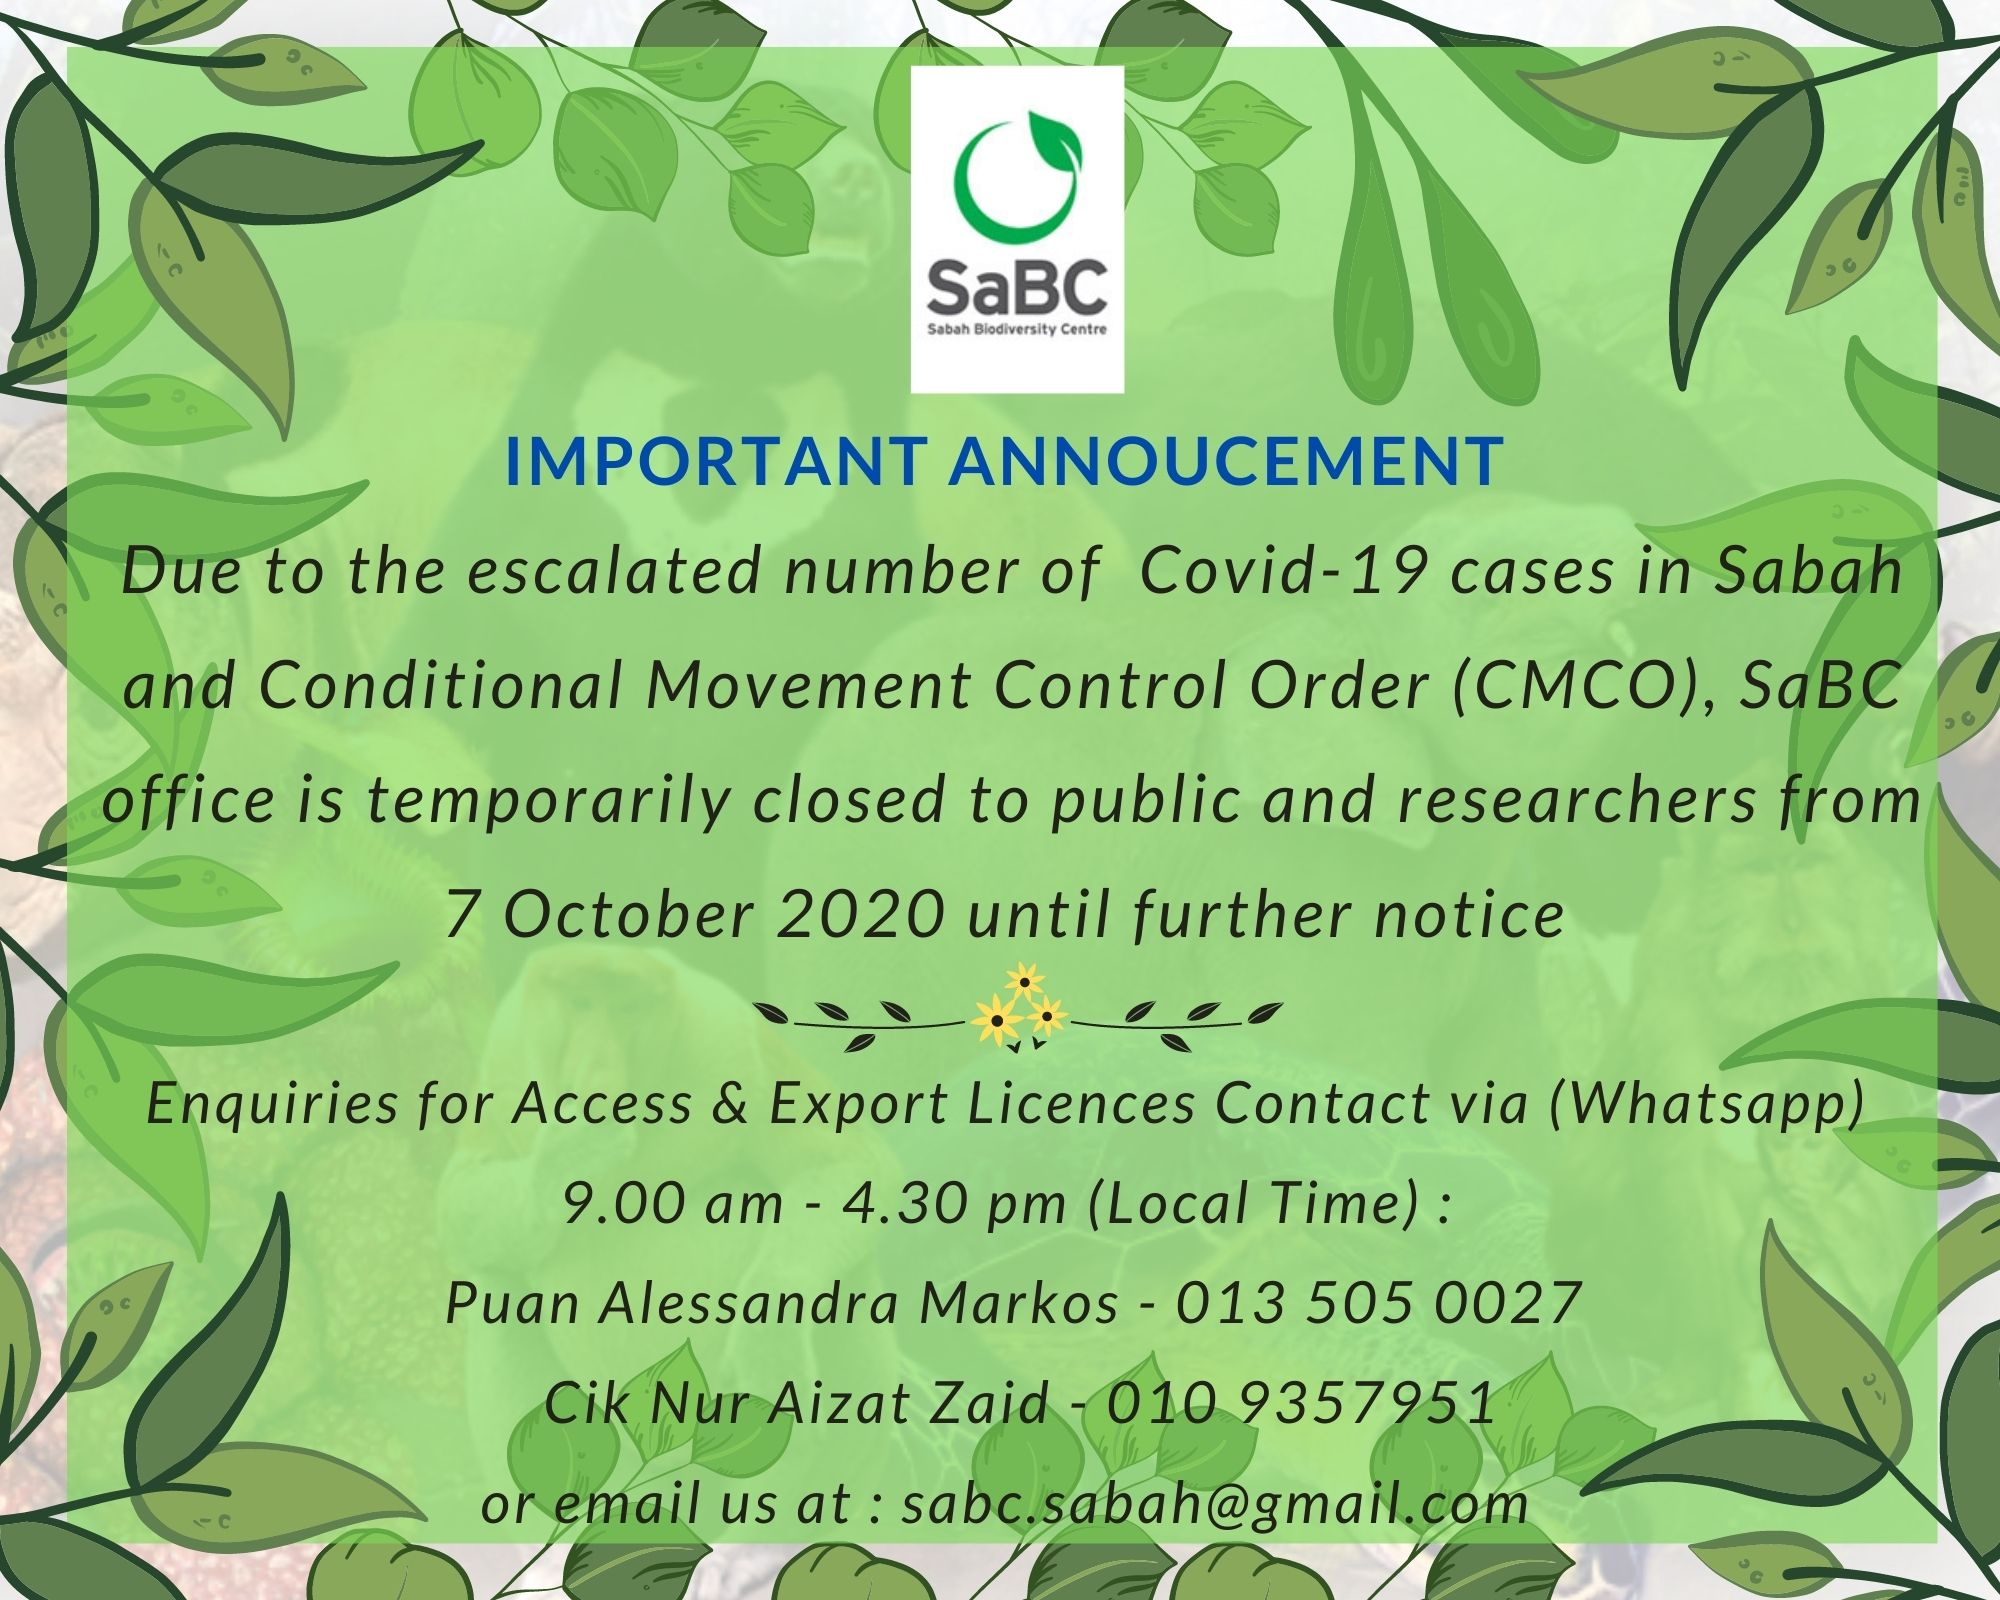 Hello ! Due to the escalated number of  Covid-19 cases in Sabah and Conditional Movement Control Order (CMCO), SaBC office is temporarily closed to public and researchers from 7 October 2020 till further notice. We sinceraly apologize for any inconvenience that cause. Any inquiries for Access & Export Licences details down below. Stay safe ! #kitajagakita #staysafe #stayathome